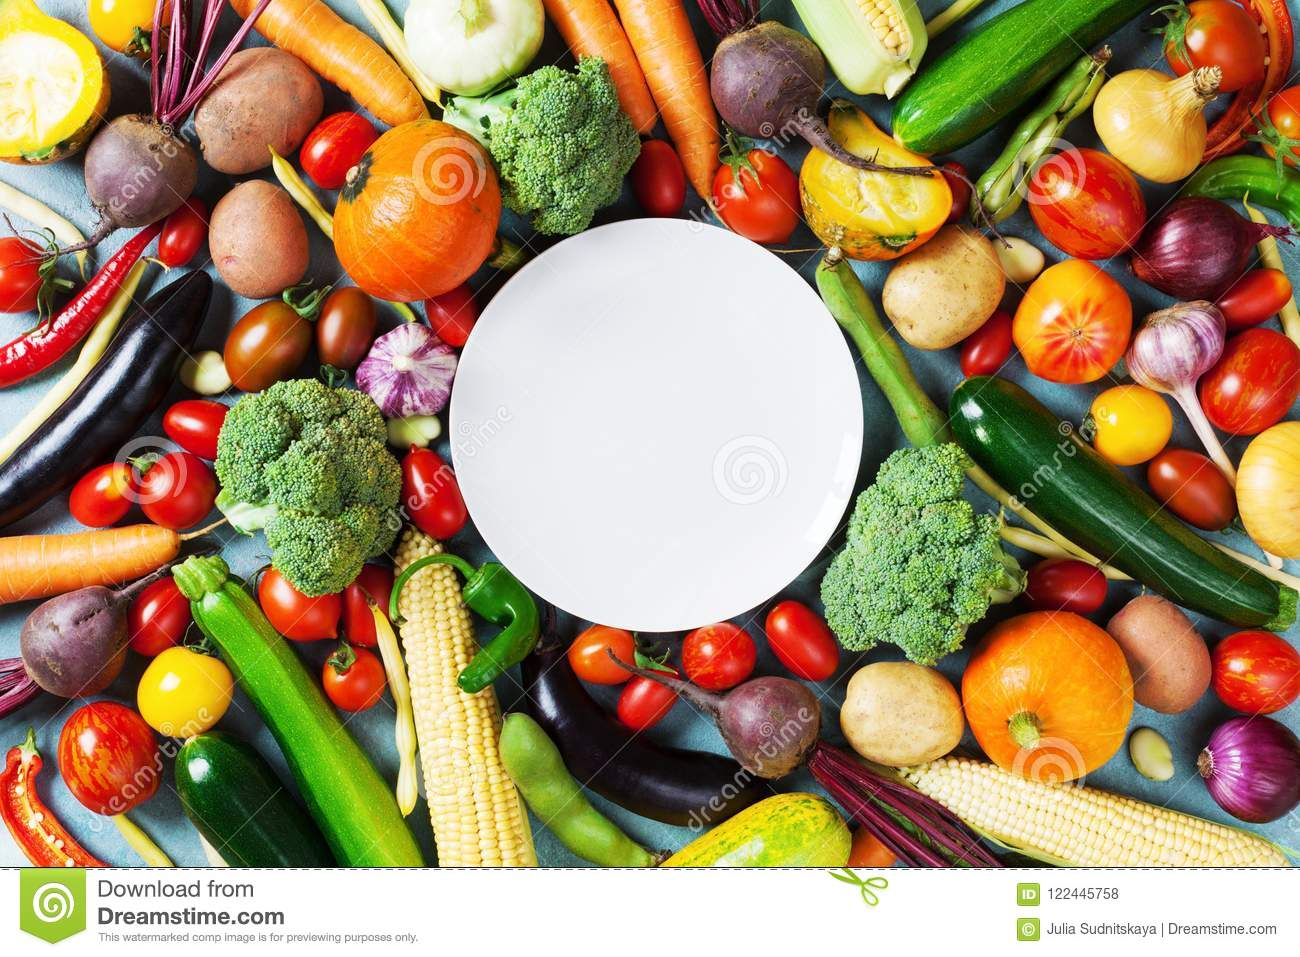 Autumn farm vegetables, root crops and white plate top view with copy space for menu or recipe. Healthy and organic food.